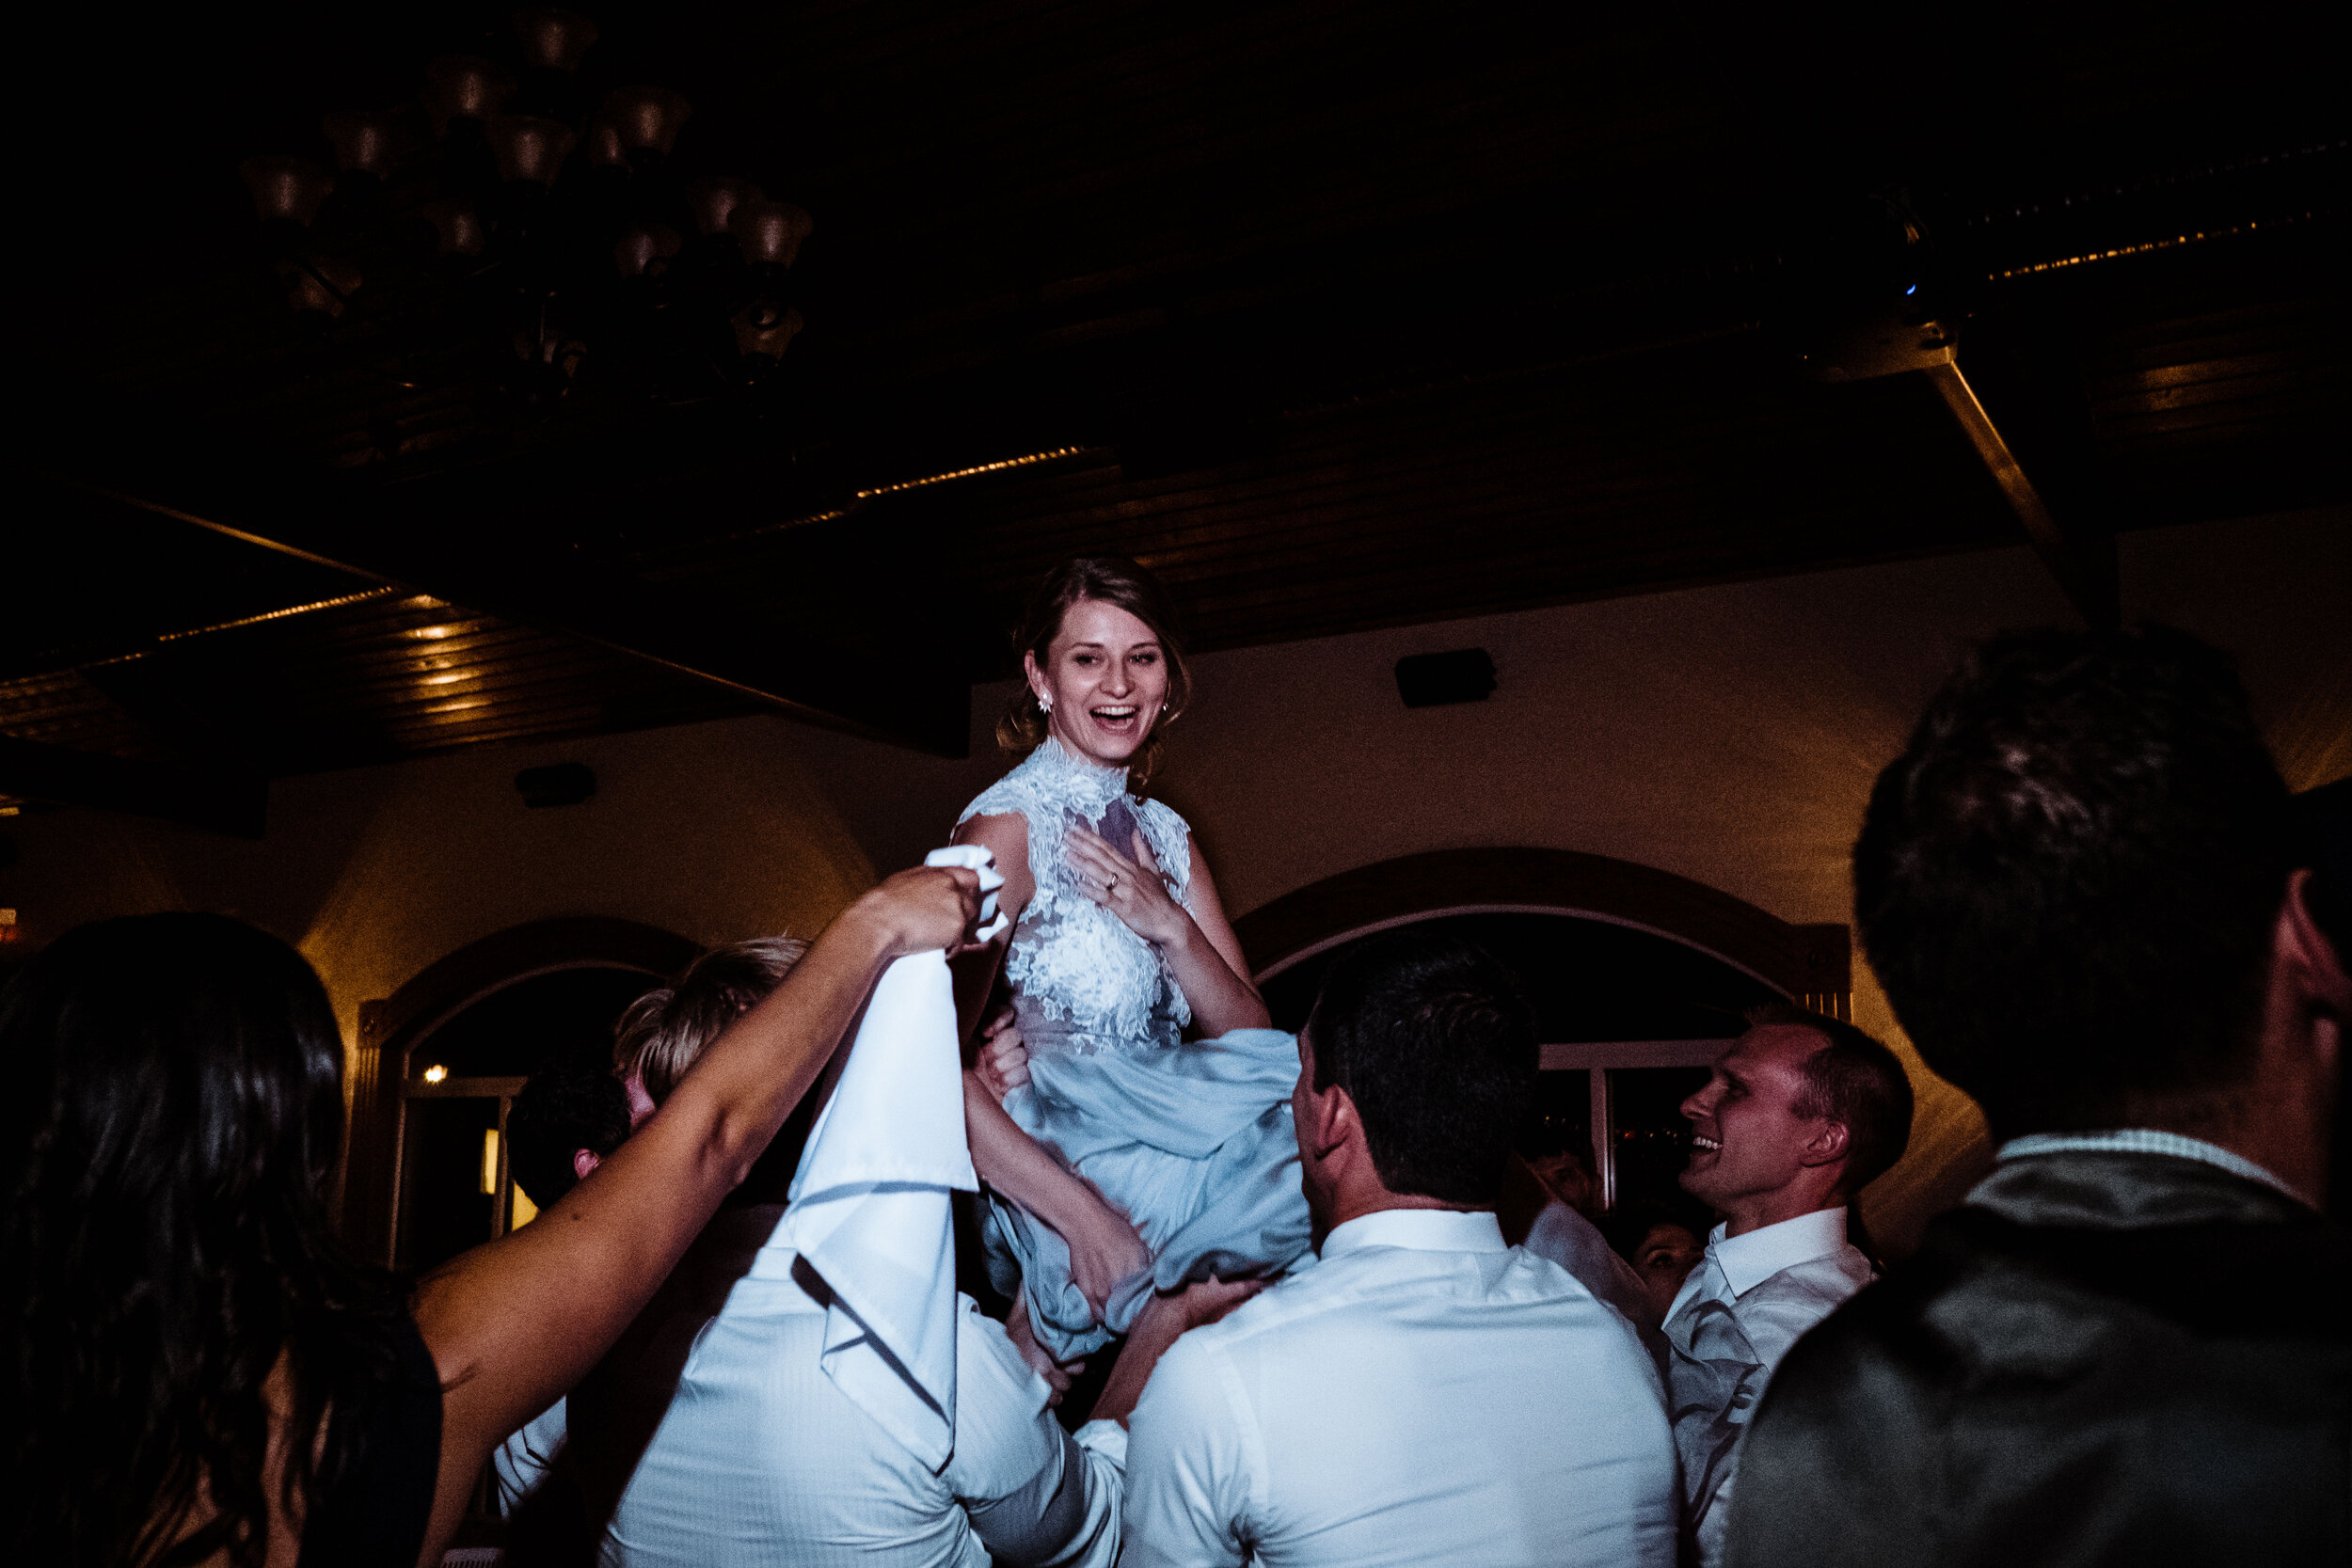 rice_gustafson_wedding_2018-06-23_FXP27532_©KevinFerstl2018.jpg